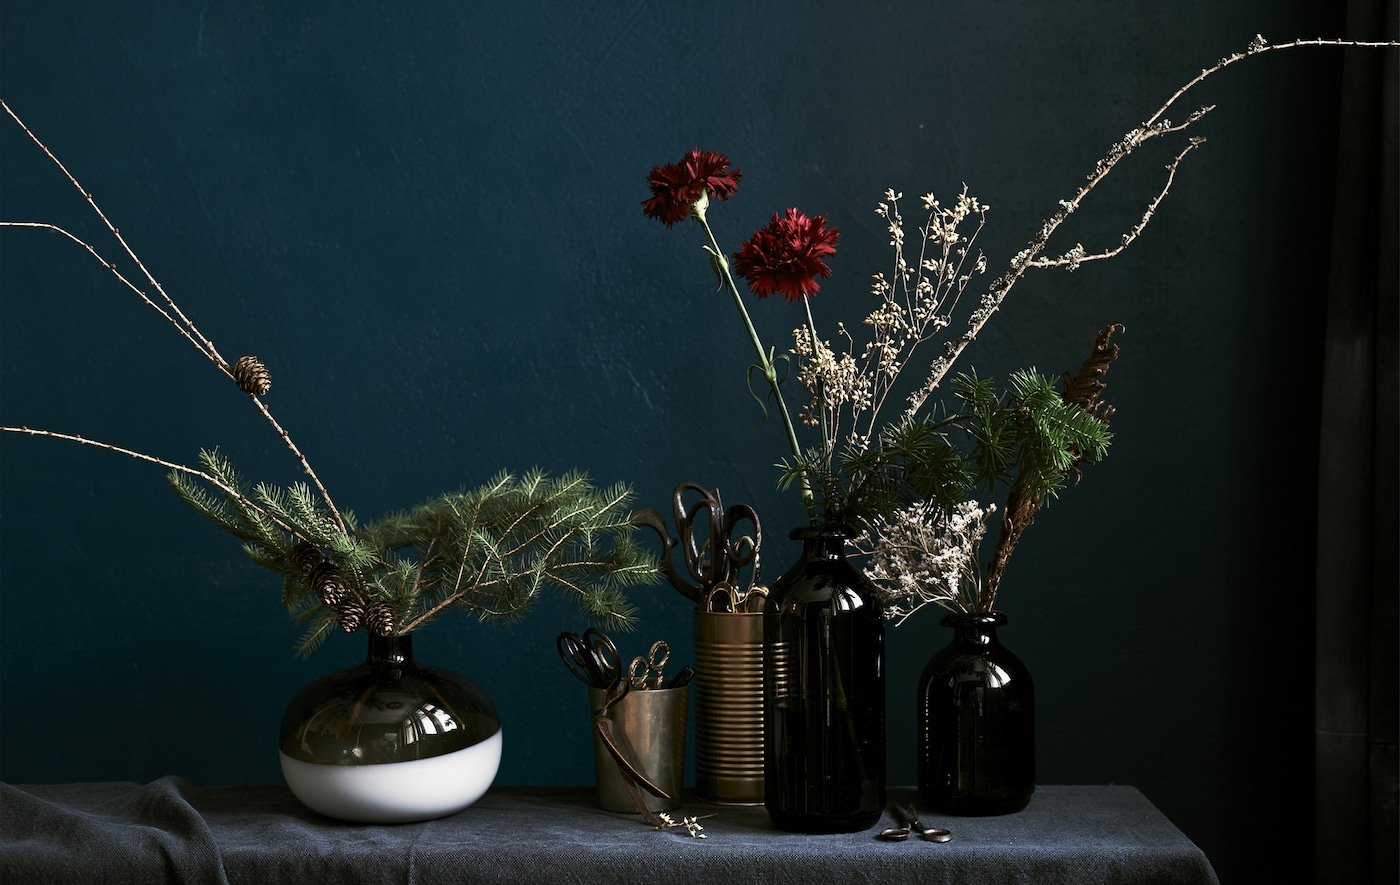 Floral displays in different size vases against a dark backcloth.